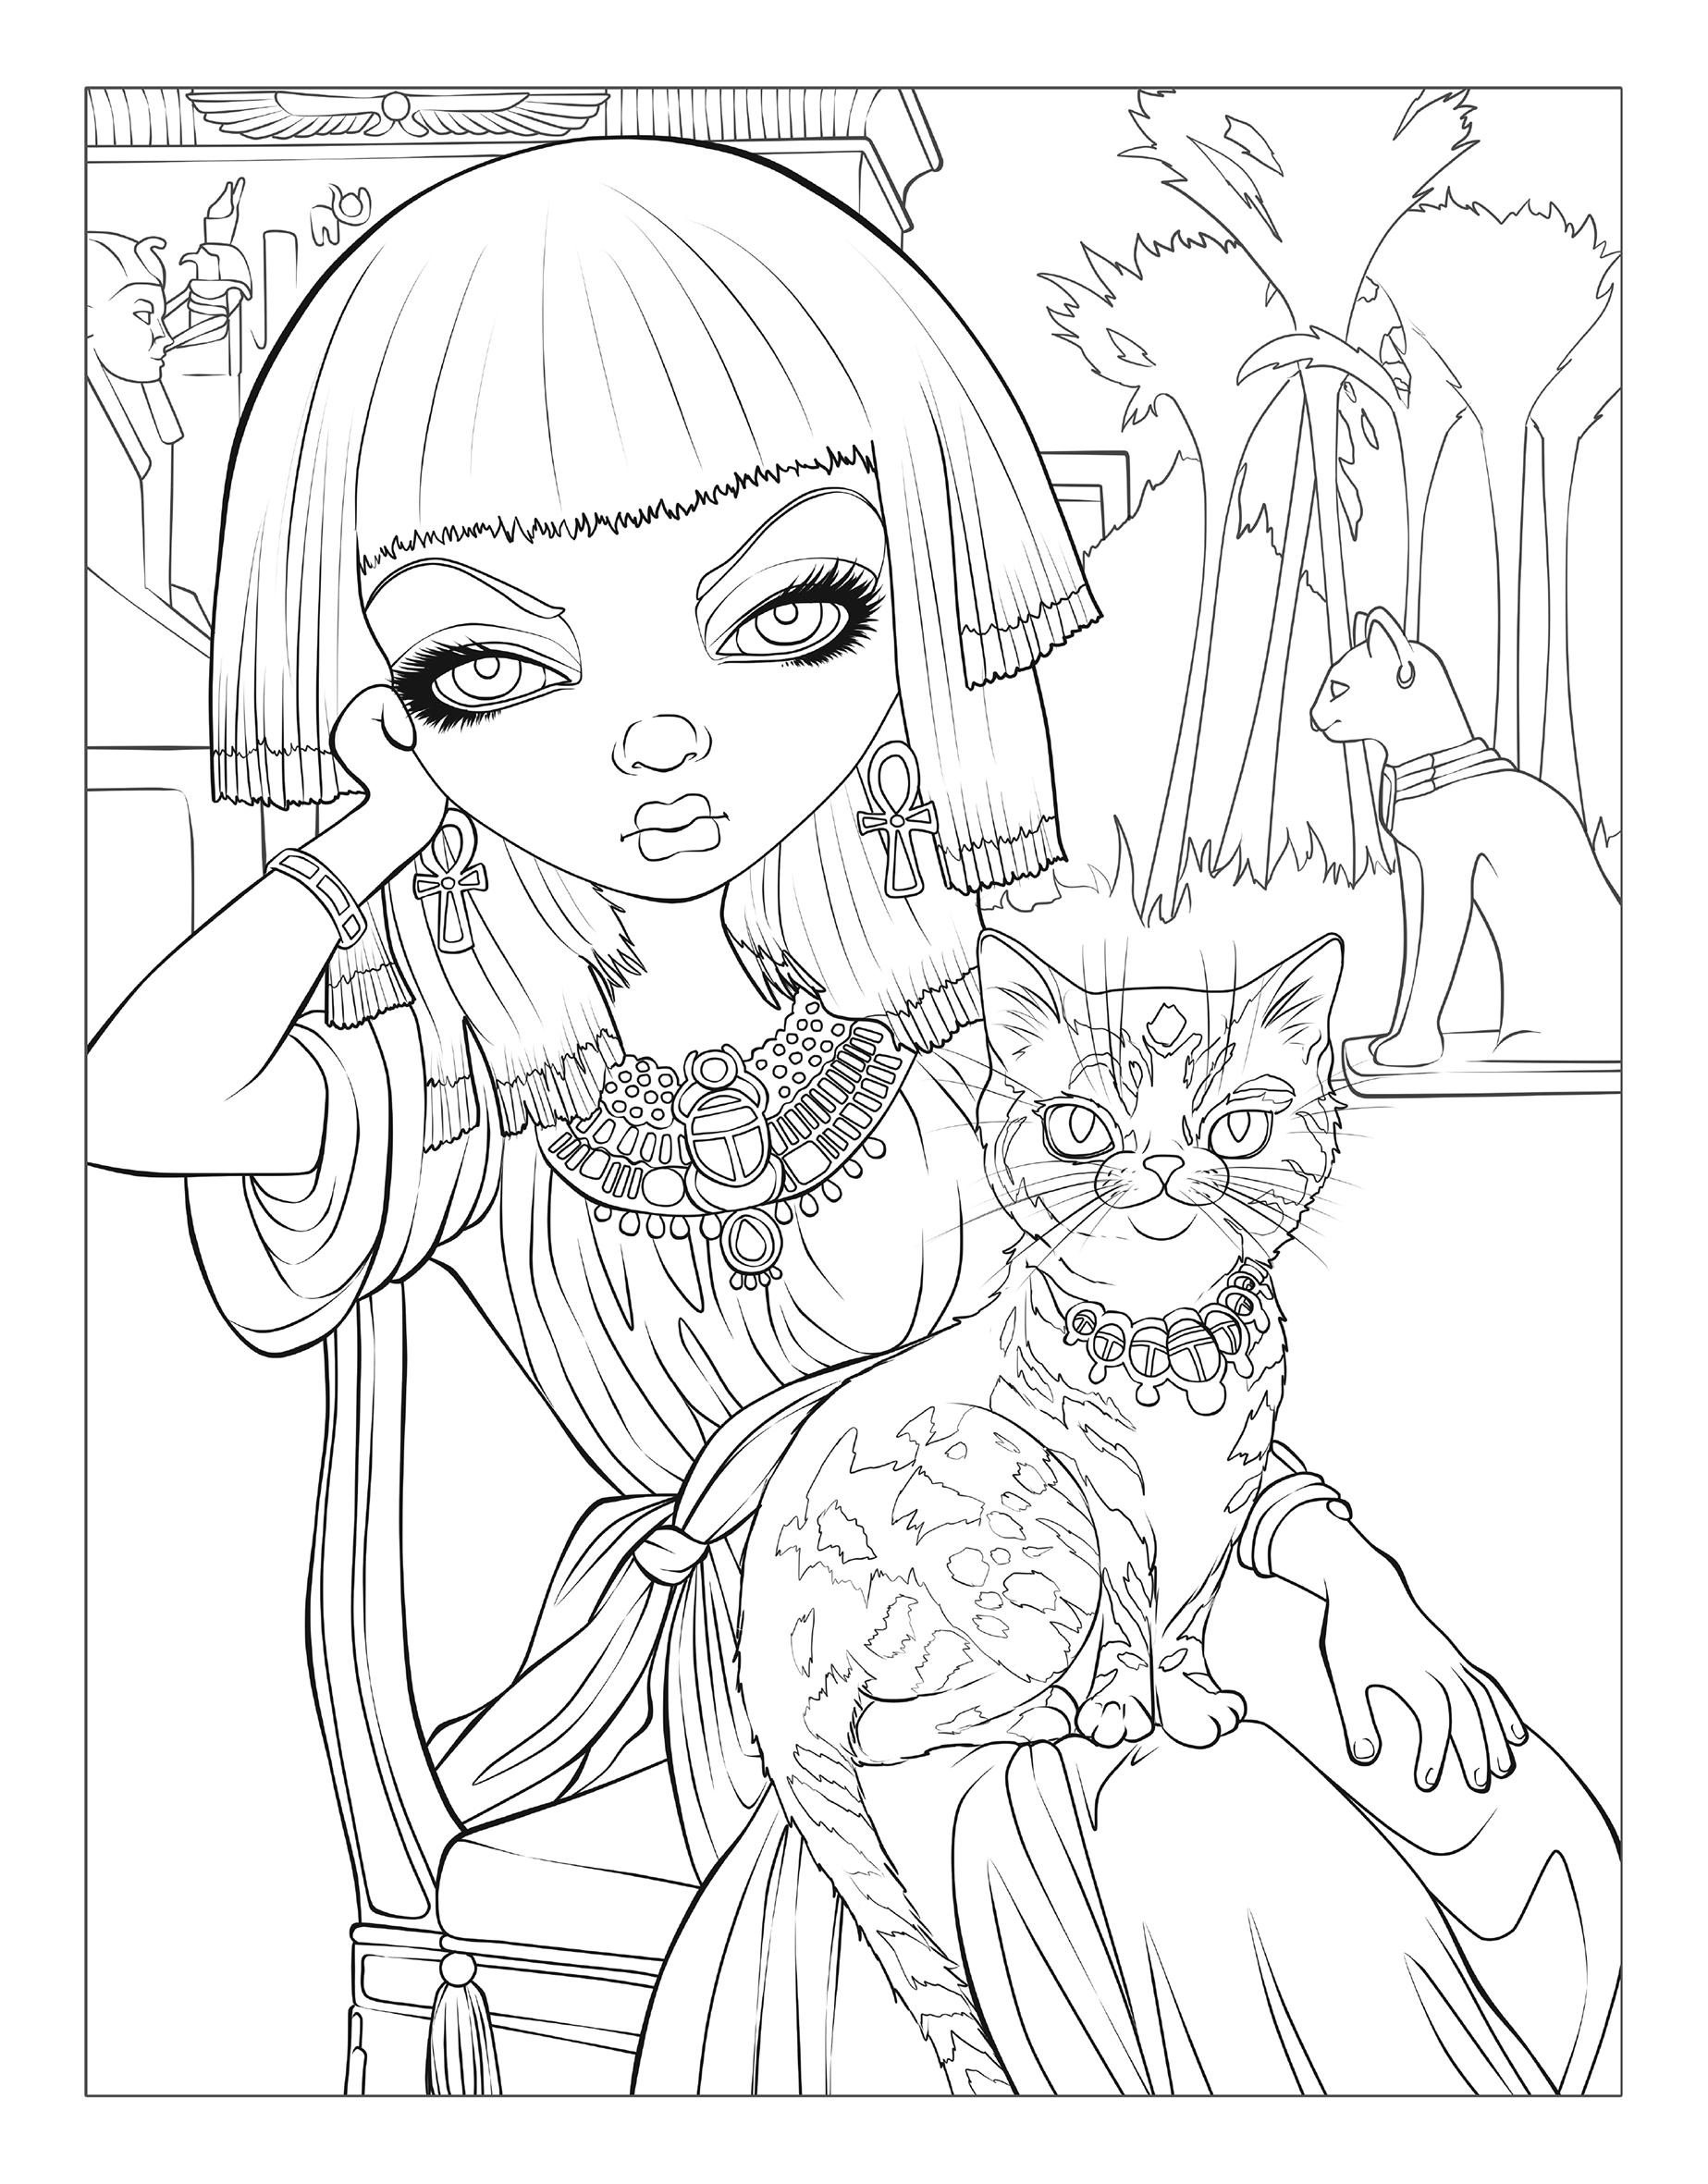 jasmine becket griffith coloring pages Amazon.com: Jasmine Becket Griffith Coloring Book: A Fantasy Art  jasmine becket griffith coloring pages